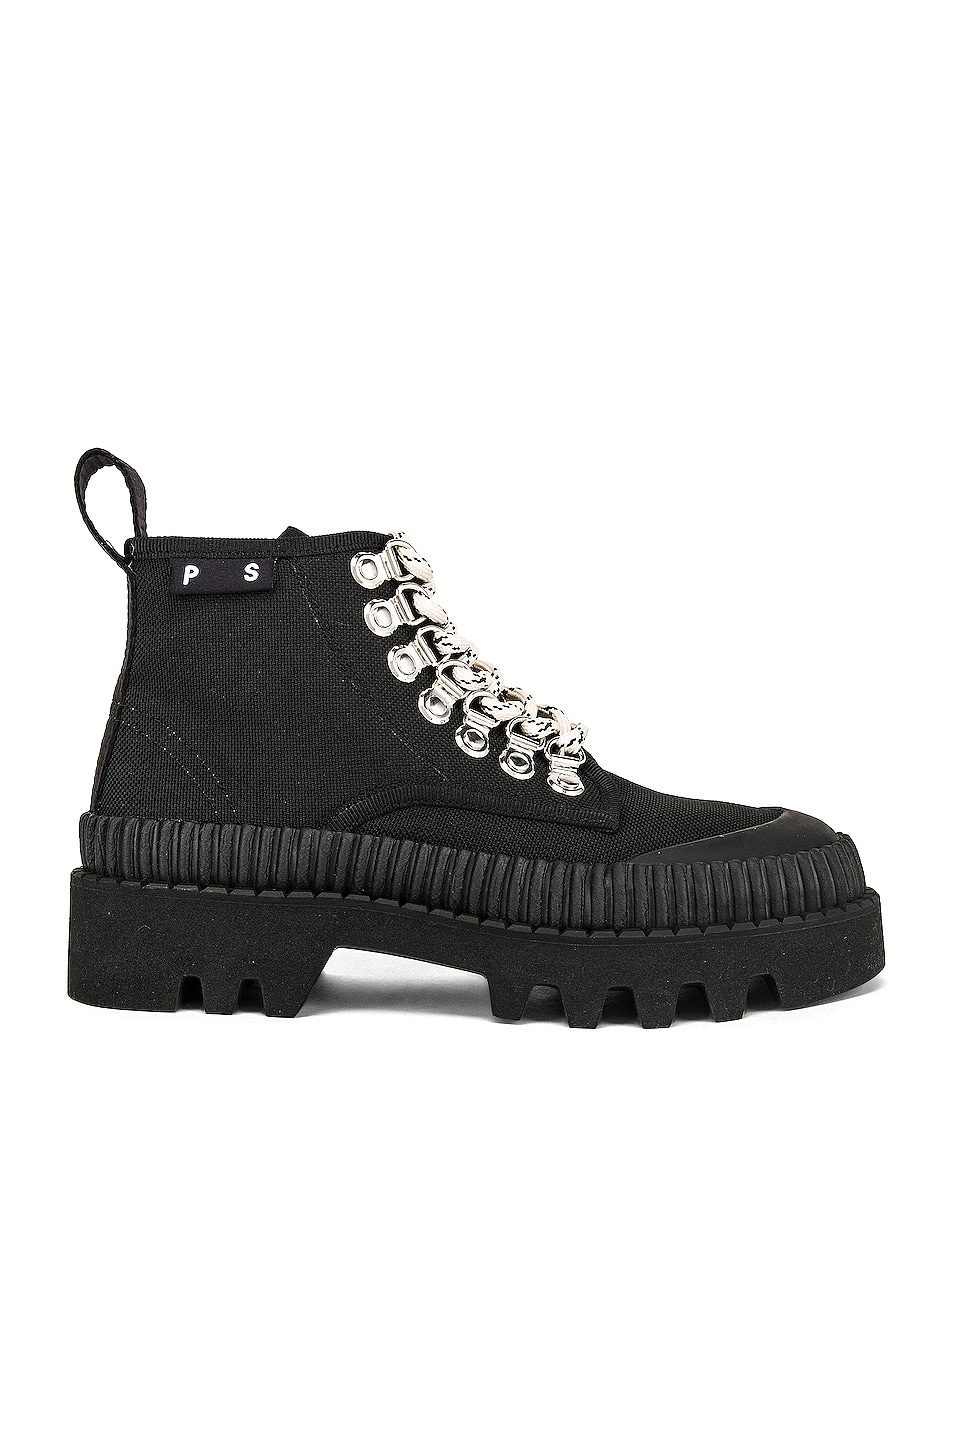 Image 1 of Proenza Schouler White Label Chunky Ankle Boot in Black